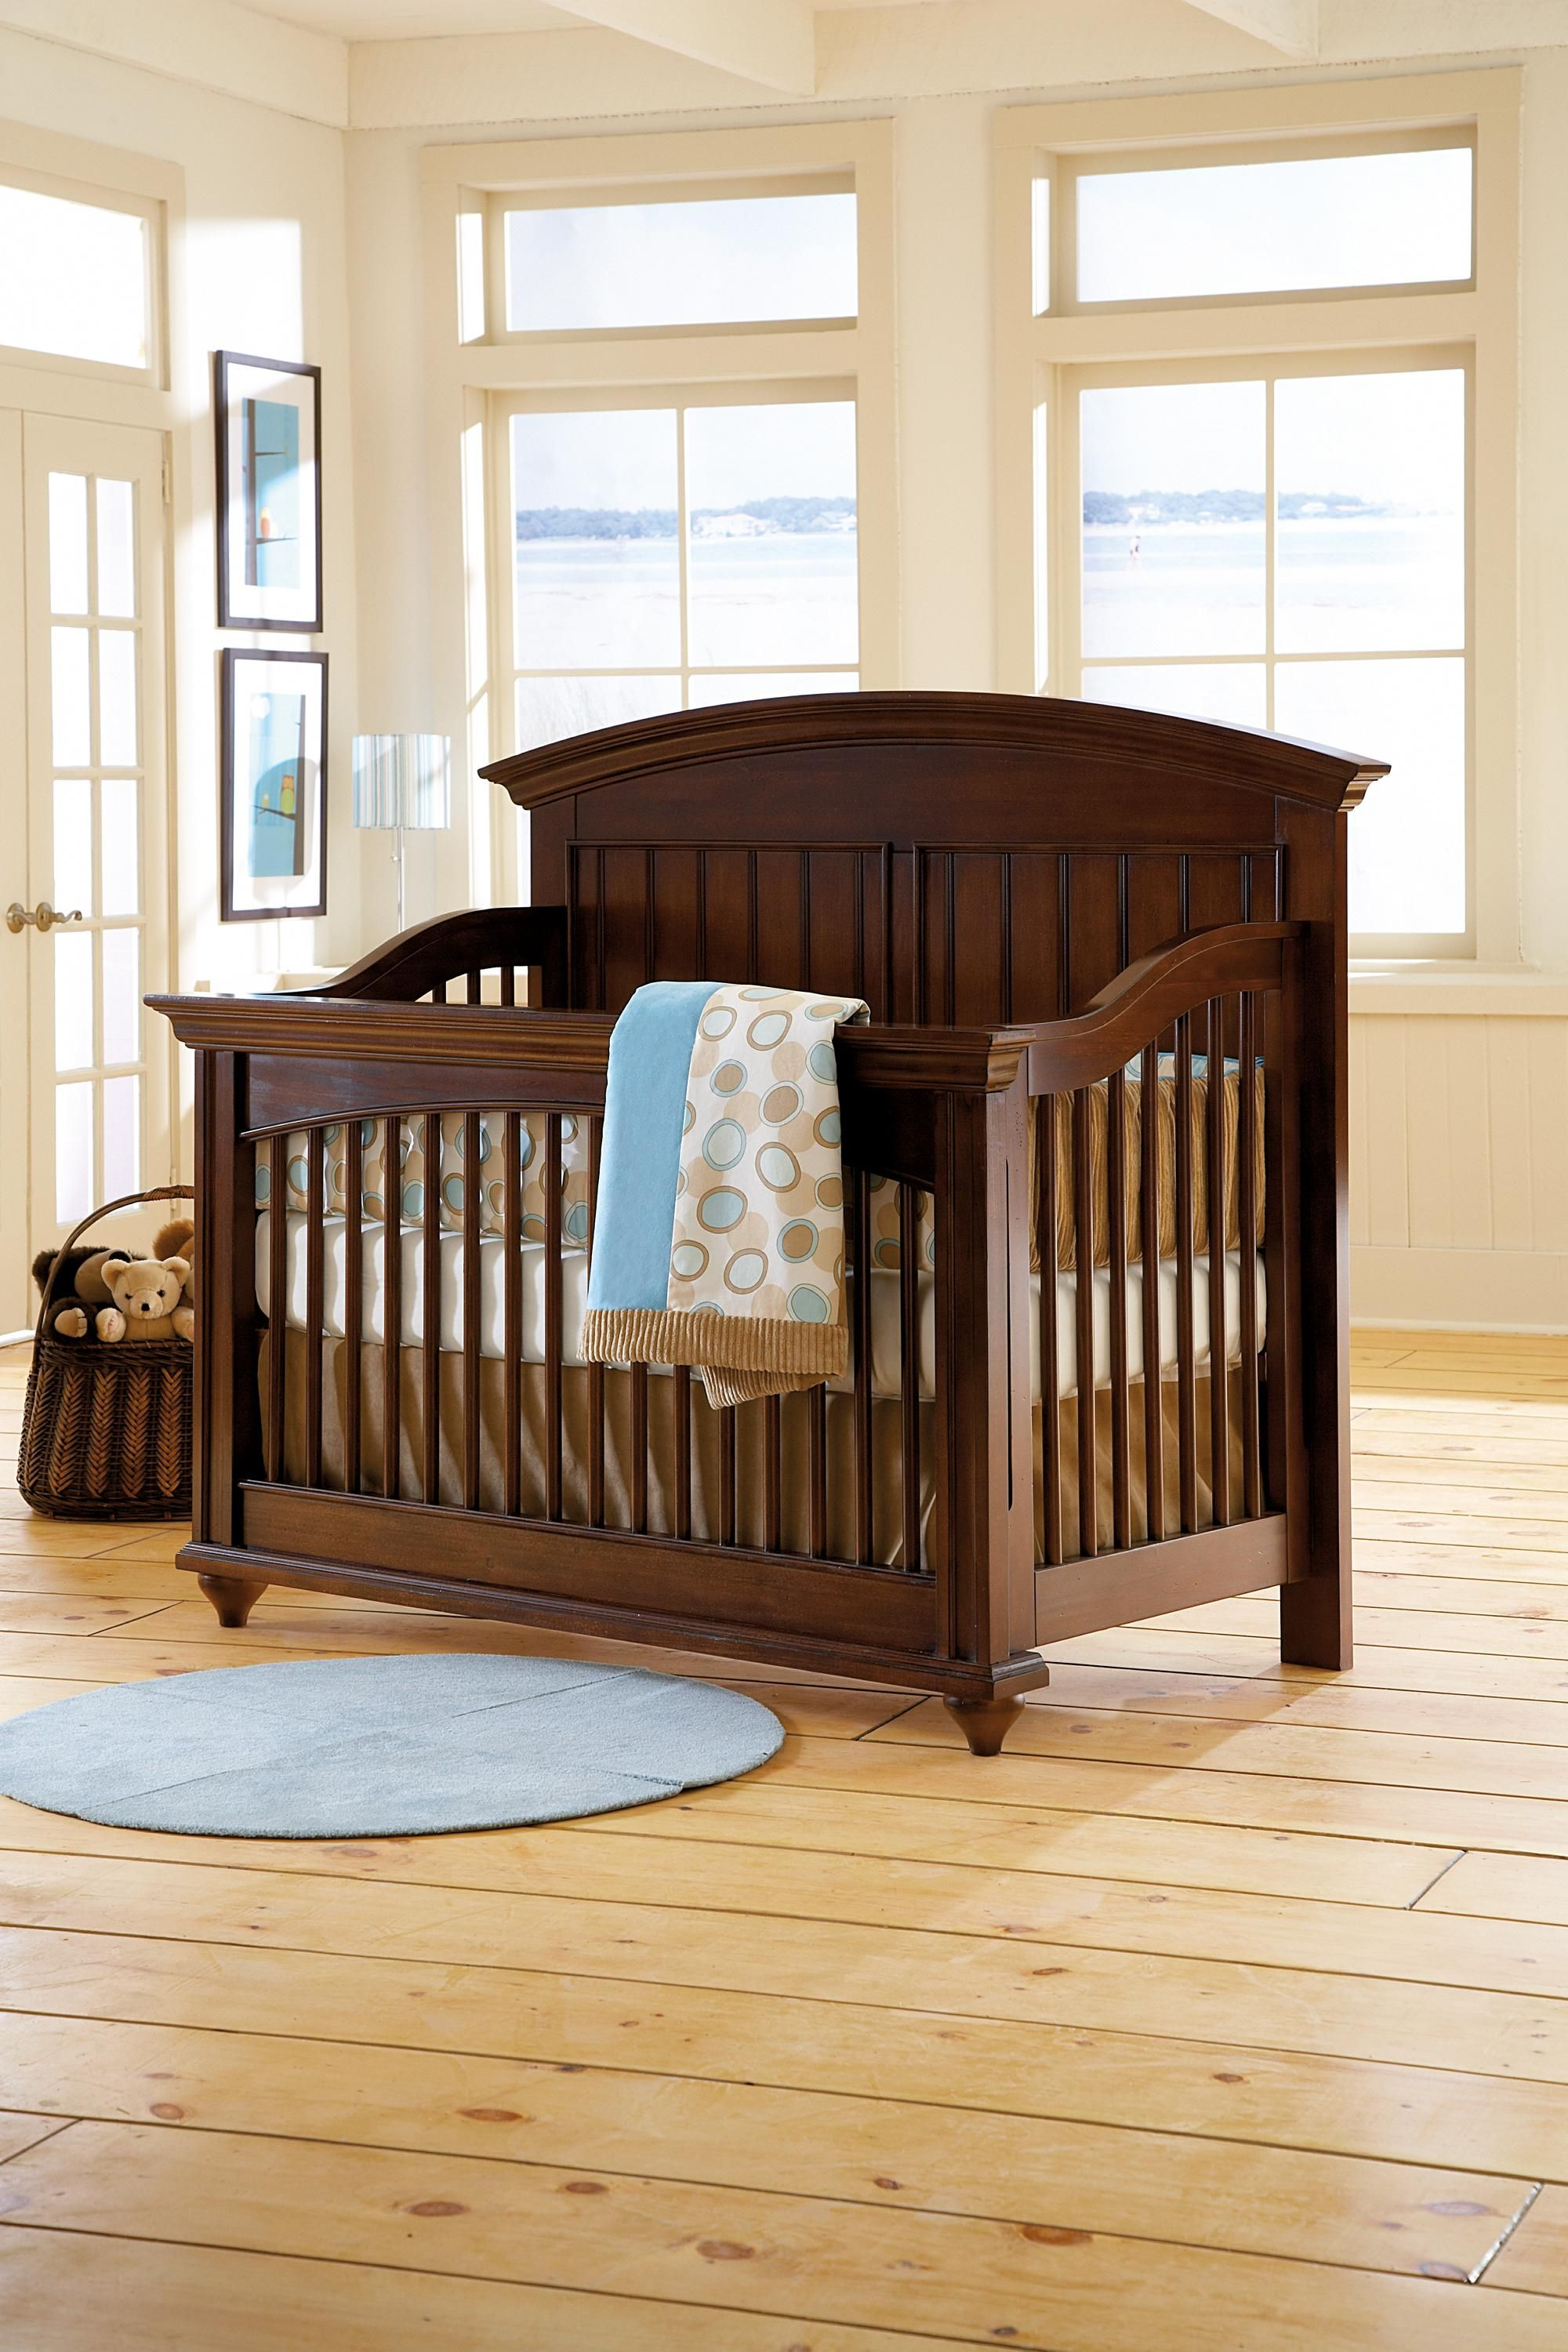 This crib design is unique mixing curves with straight lines and